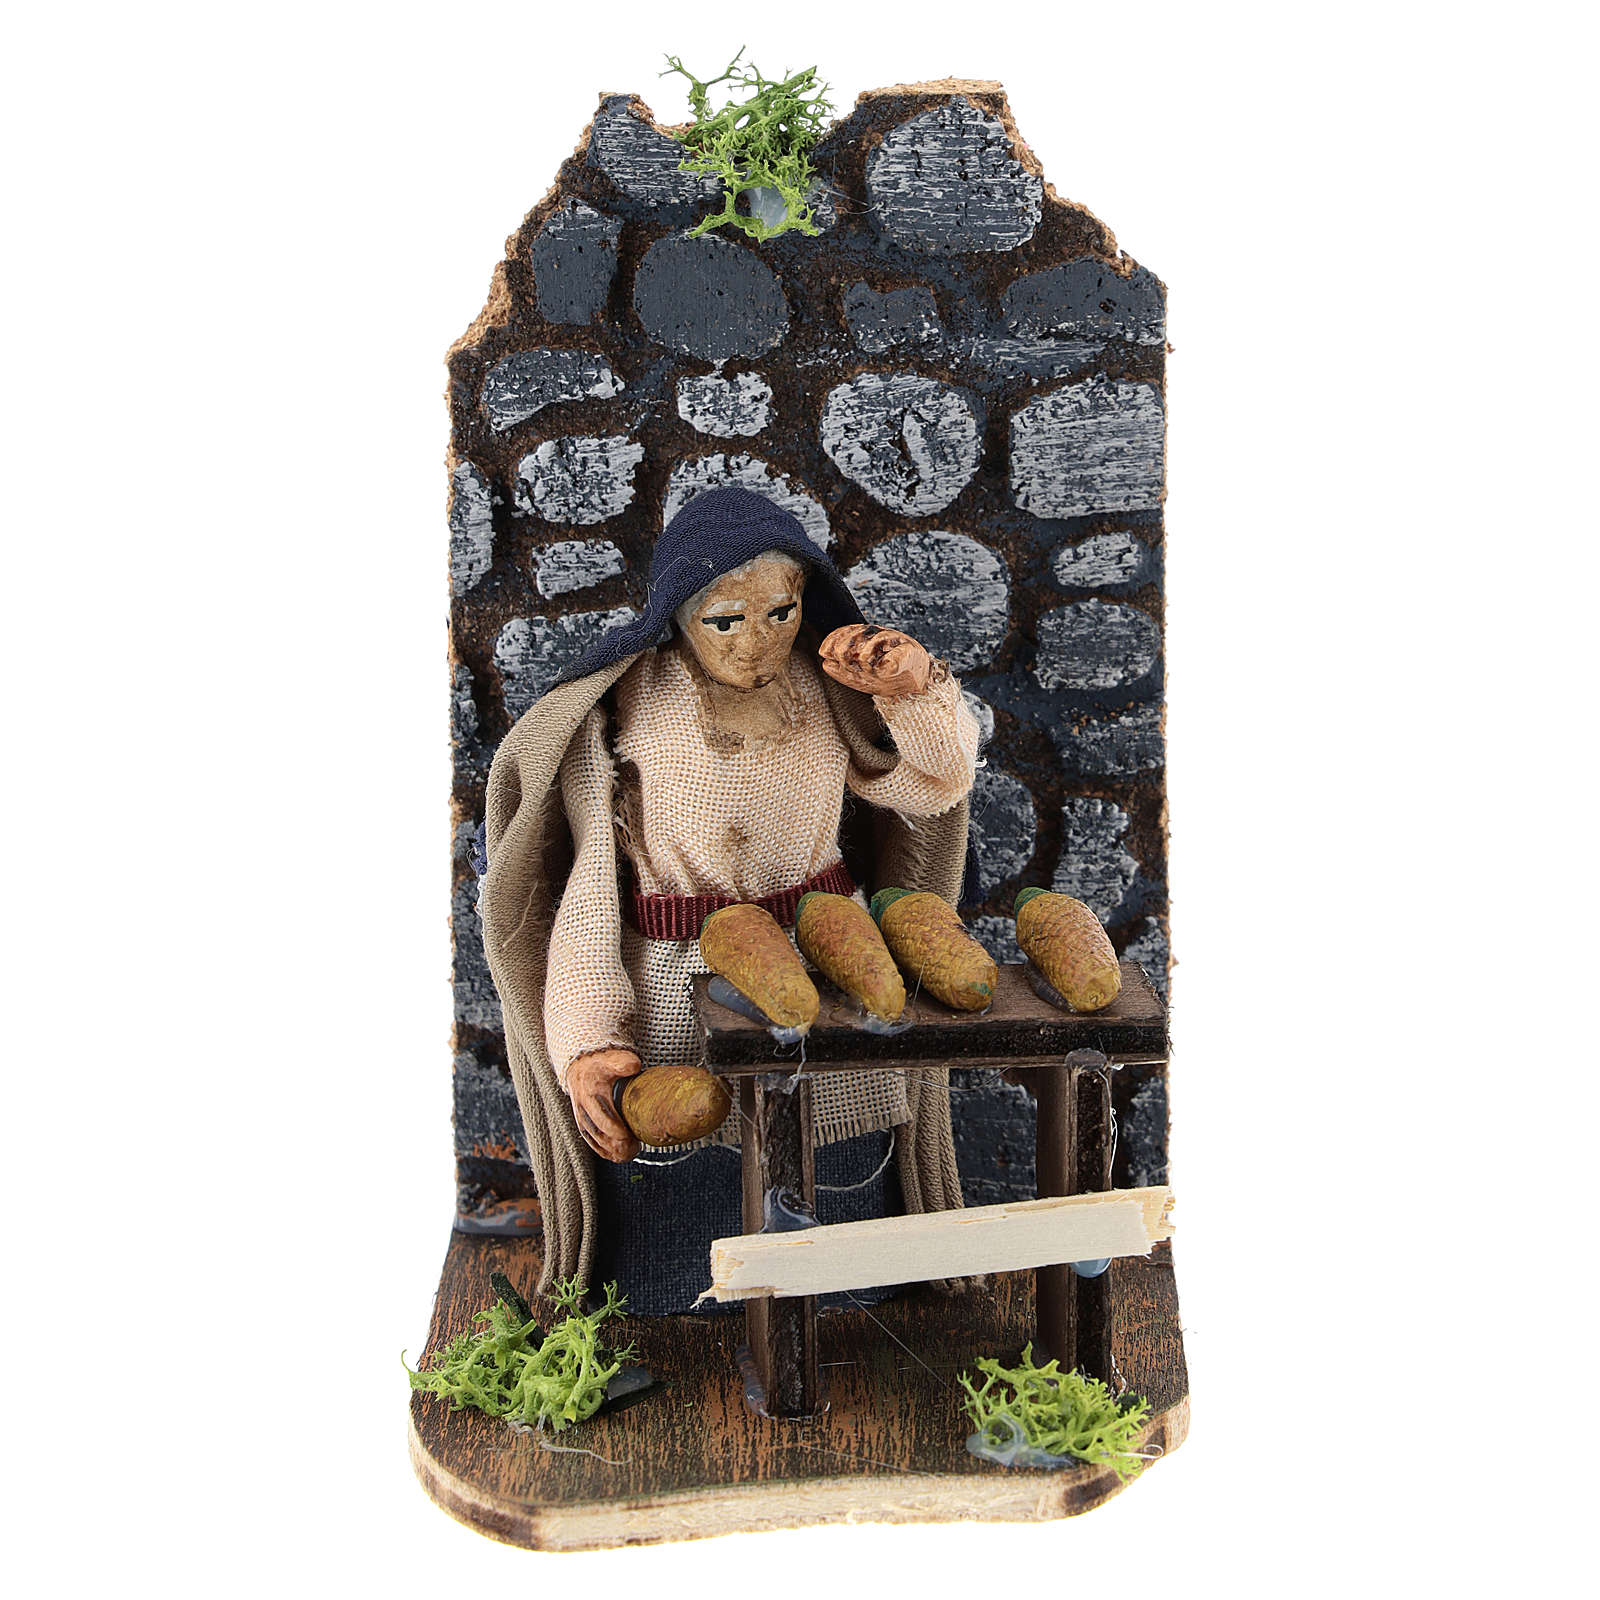 Moving corncob seller for Neapolitan Nativity Scene 7 cm 4